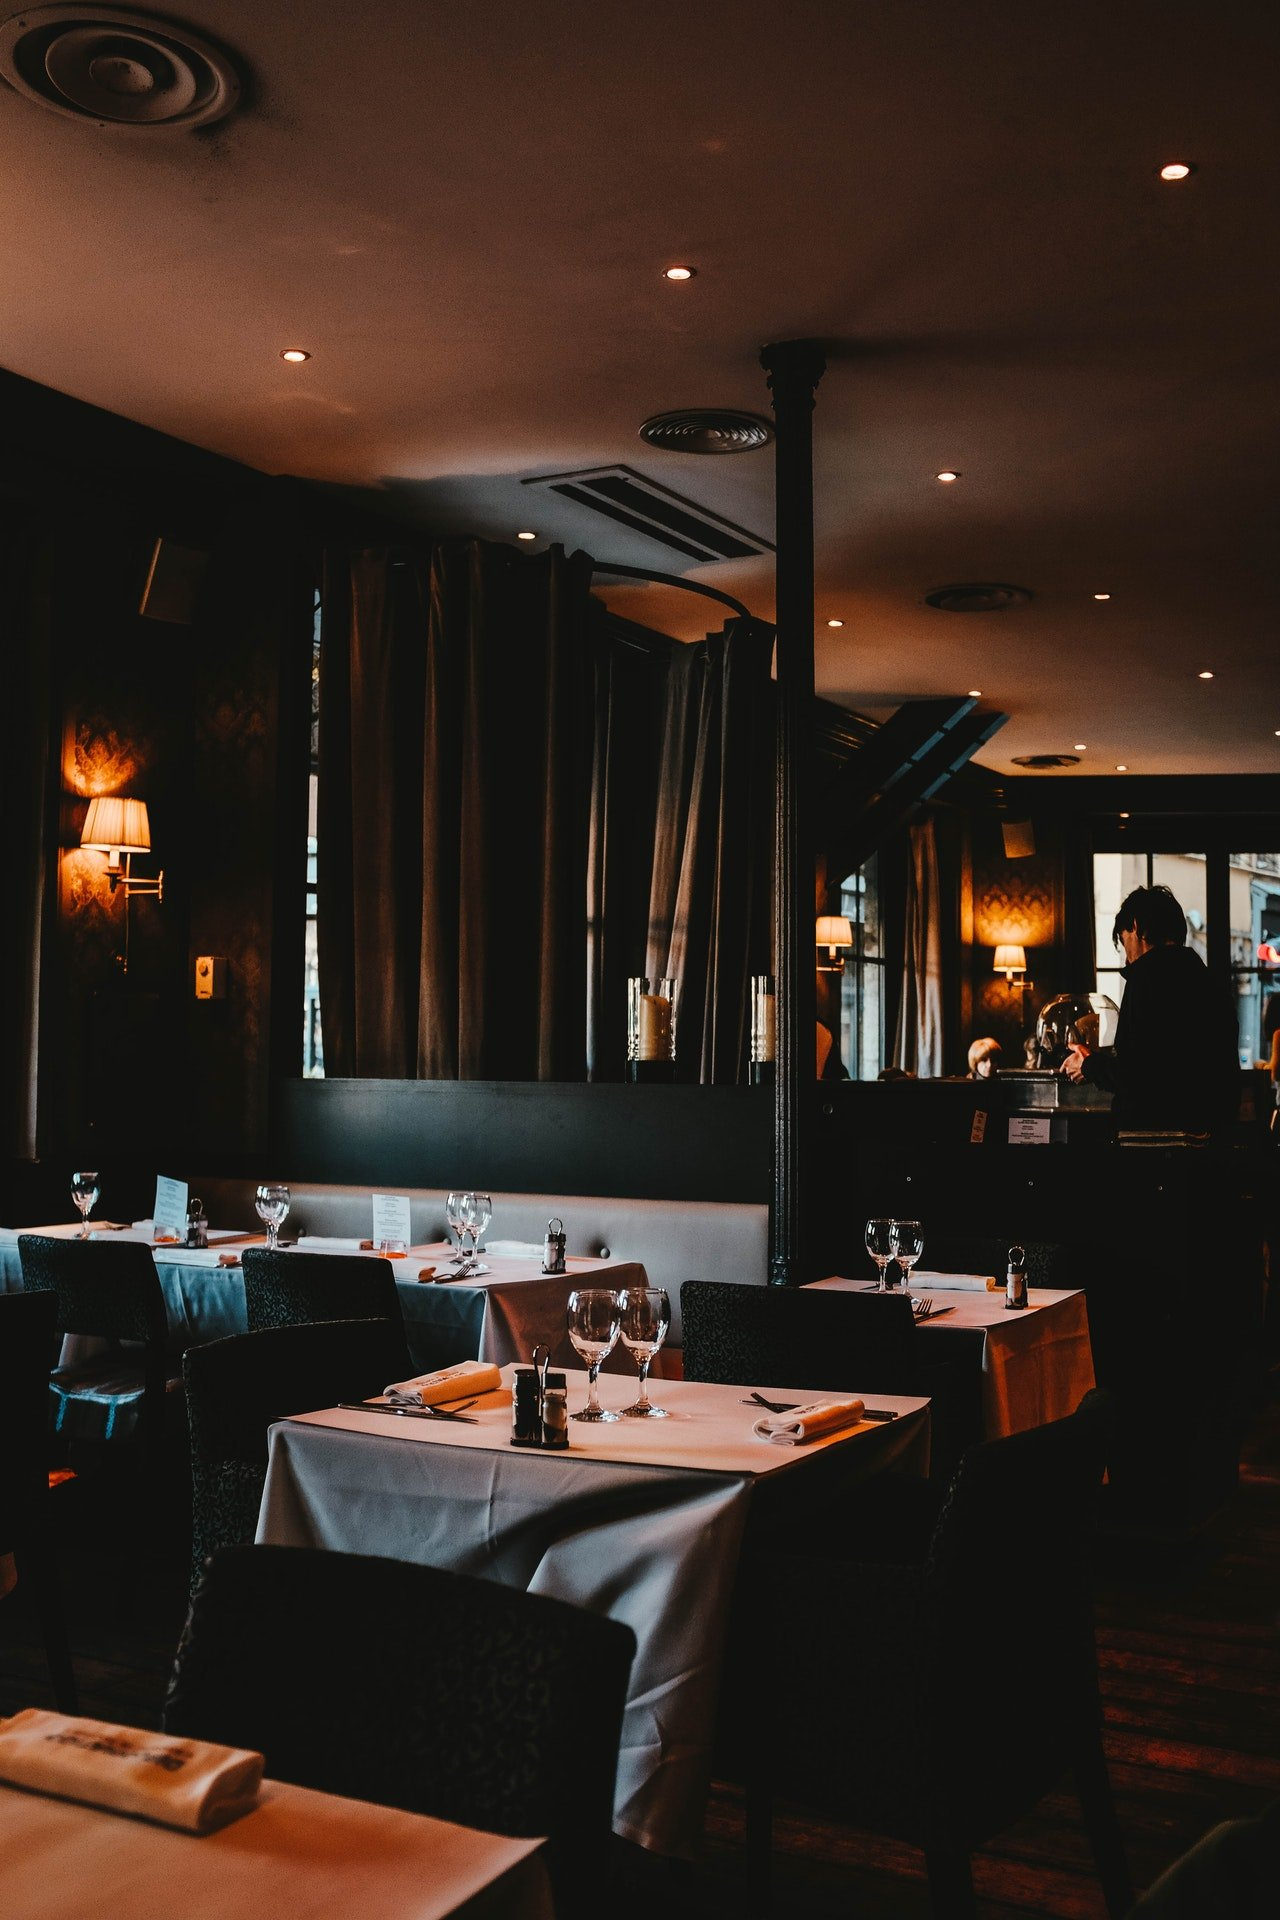 Inside view of a beautiful restaurant   Photo: Pexels